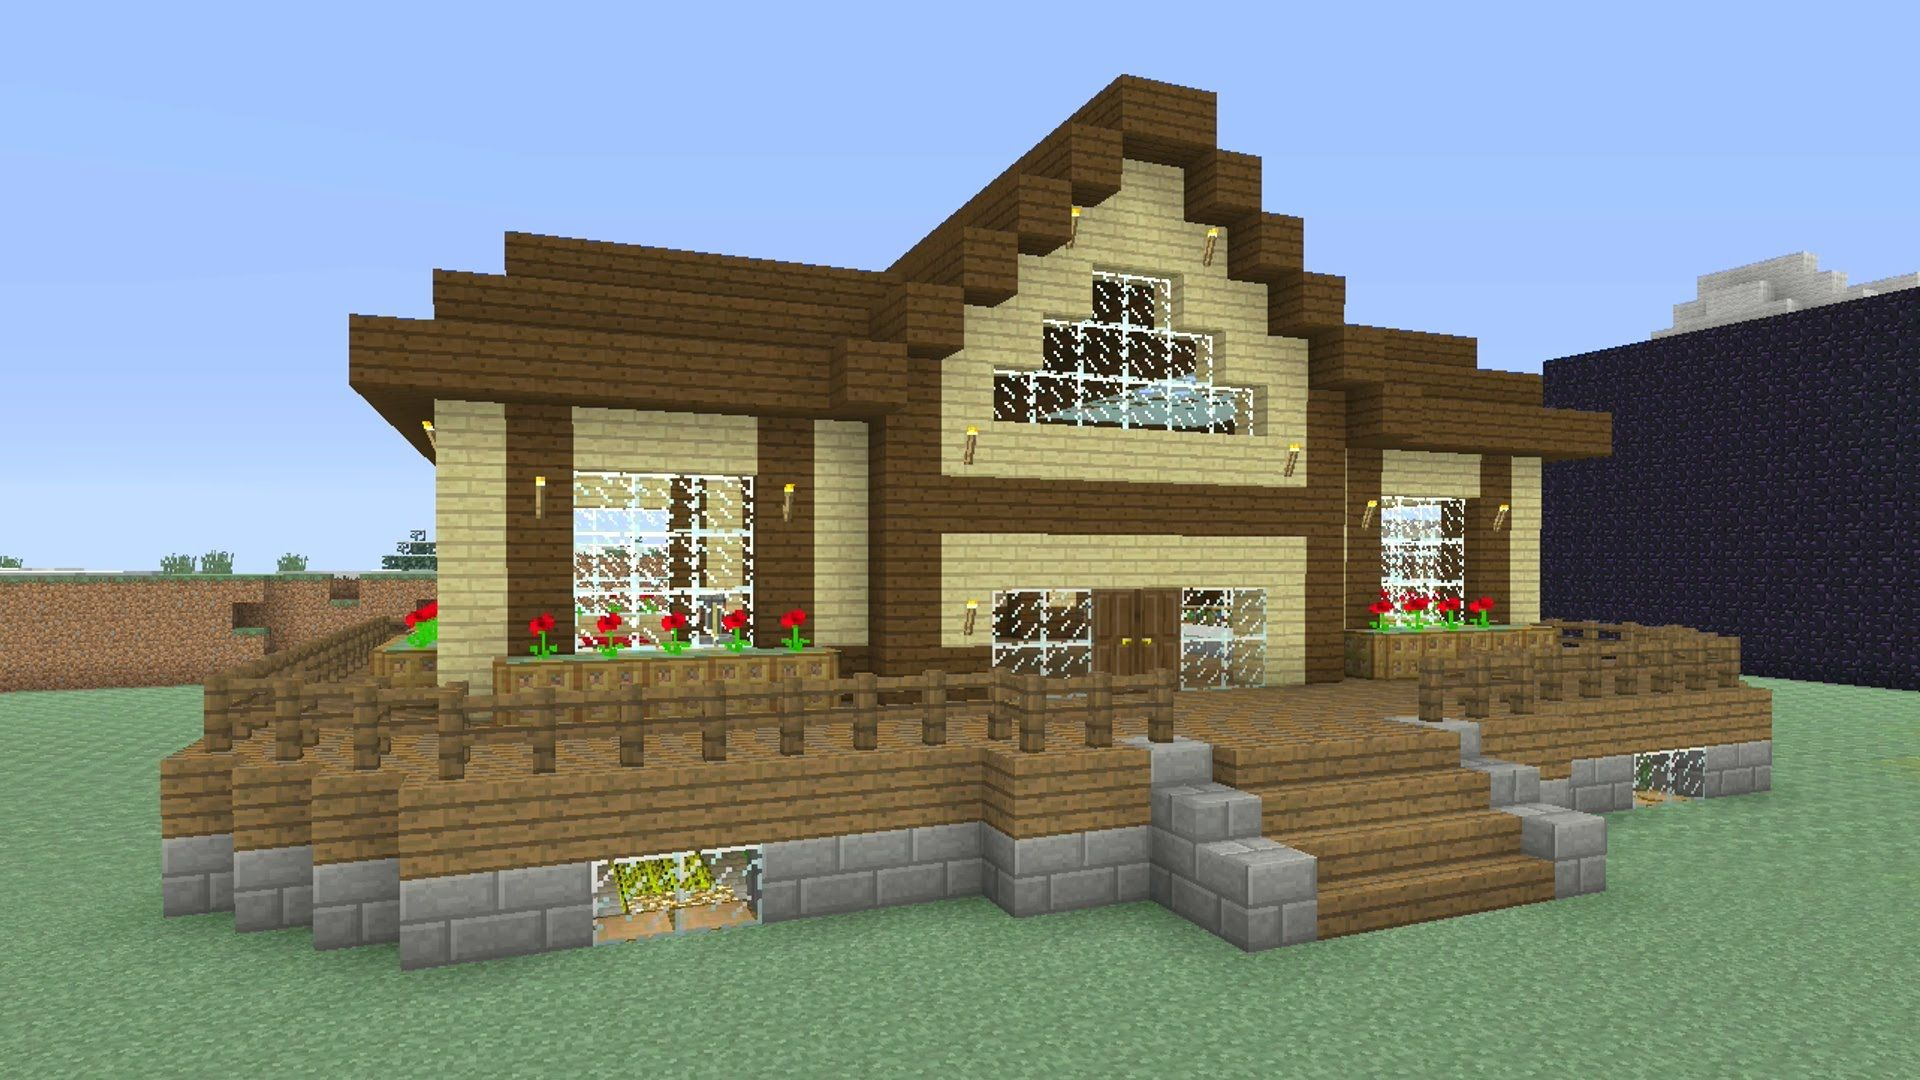 Pin by Grace T on Minecraft!!! | Easy minecraft houses ...